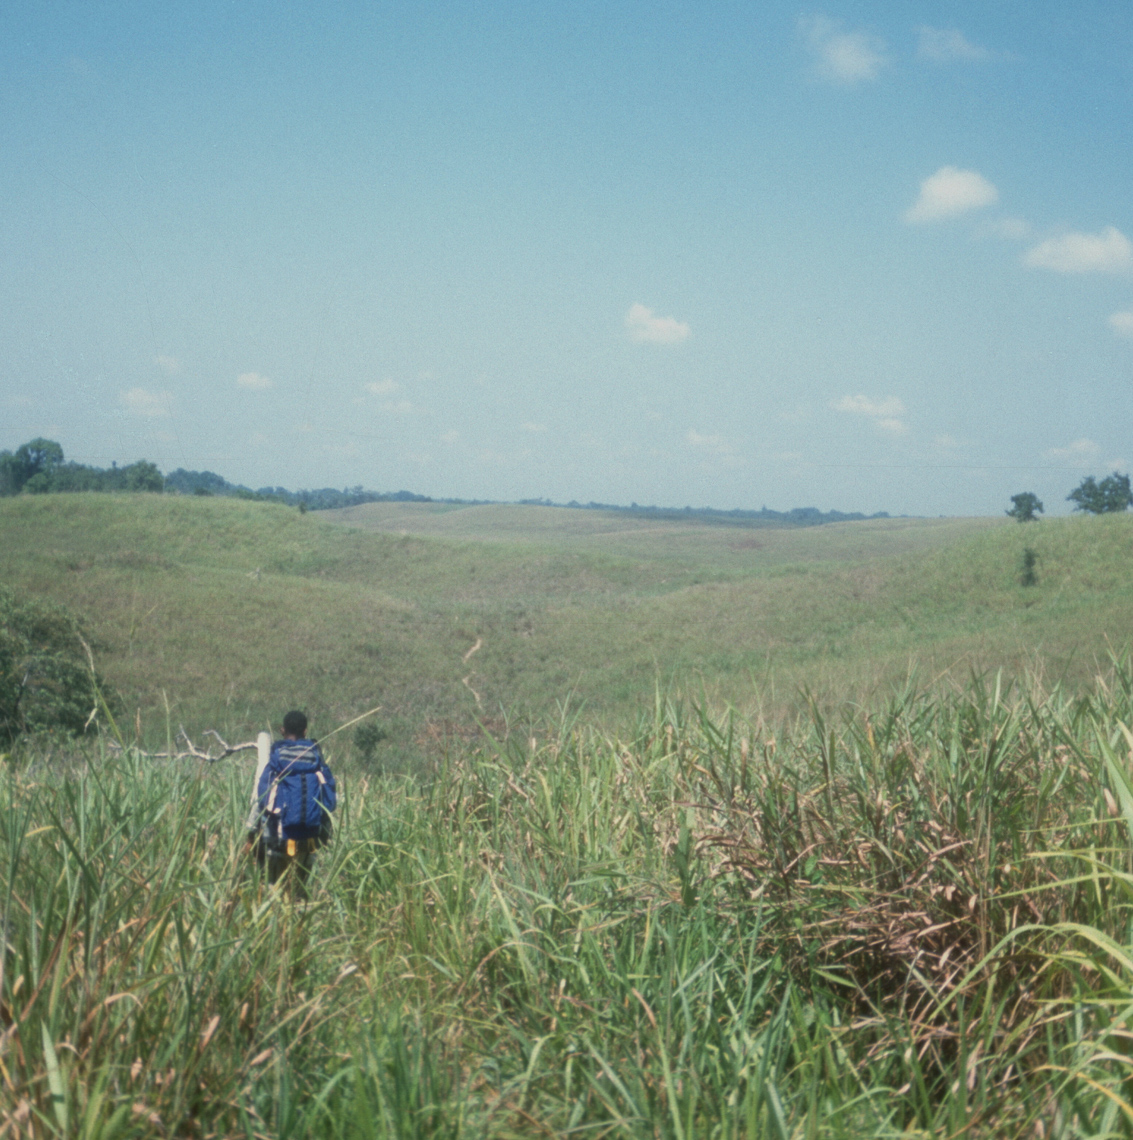 Kunai Grasslands of Sepik Plains, Hot Walking Searching for New Guinea Art